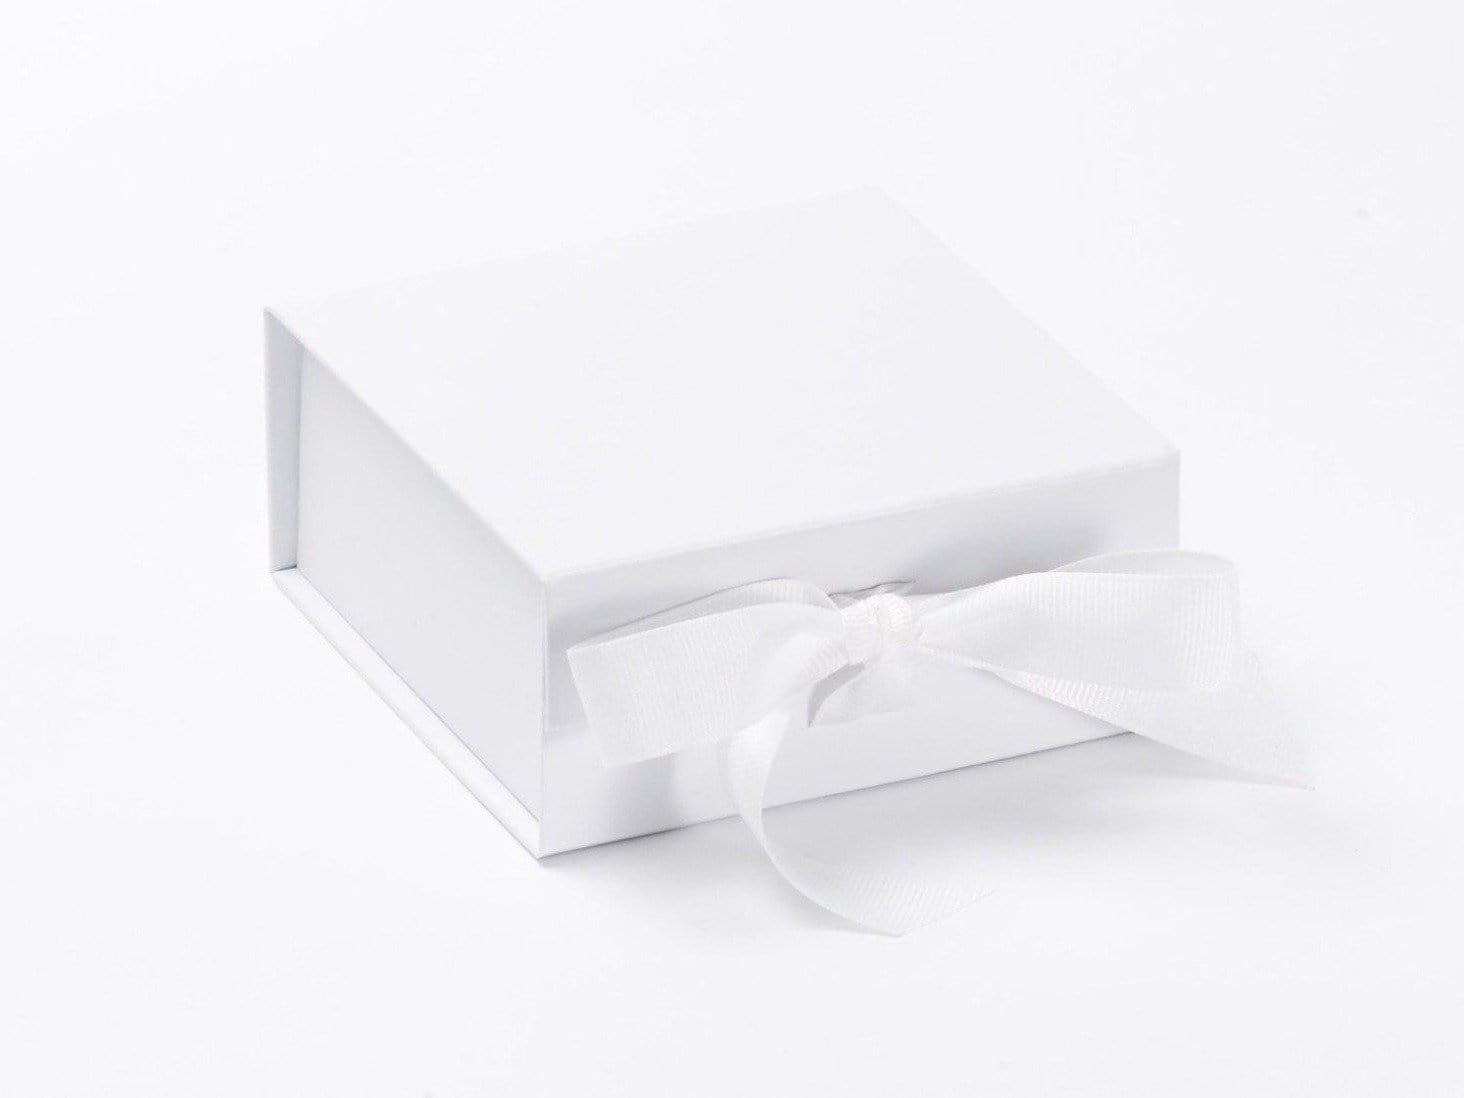 White Small Folding Gift Box with Fixed Ribbon Ties